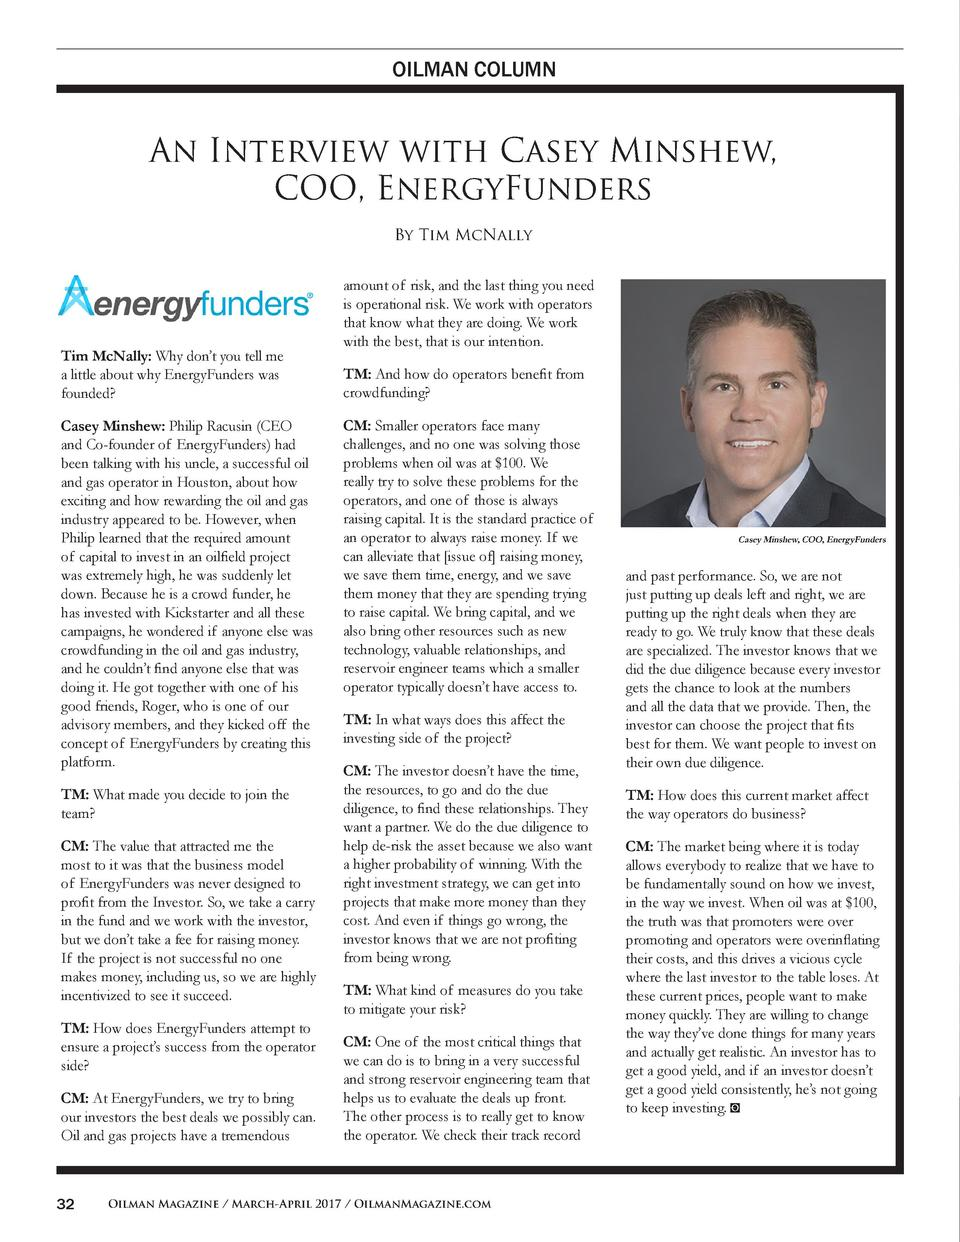 OILMAN COLUMN  An Interview with Casey Minshew, COO, EnergyFunders By Tim McNally  Tim McNally  Why don   t you tell me a ...